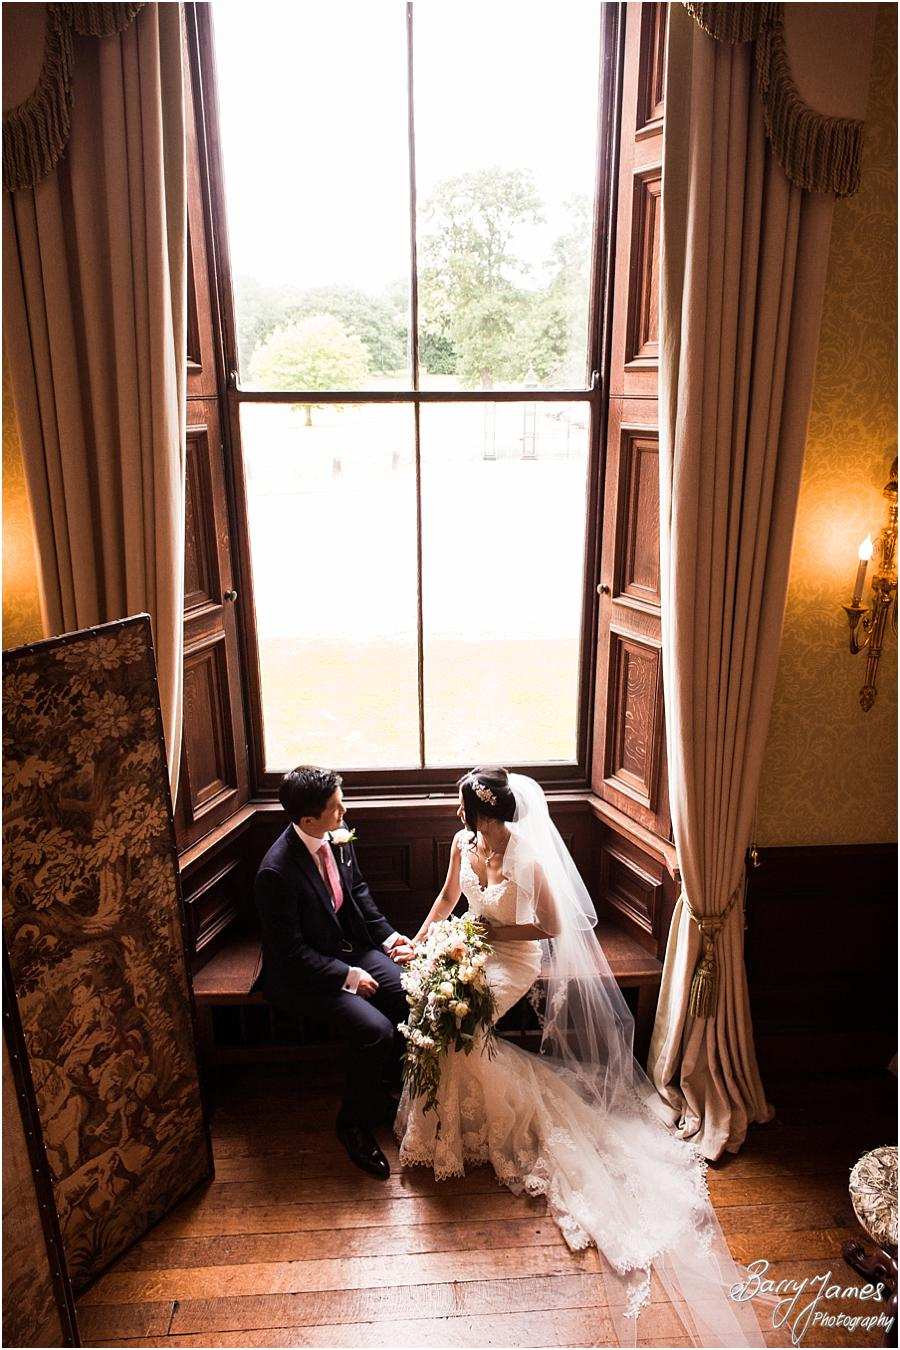 Creative portraits on the grand staircase at Sandon Hall in Stafford by Stafford Wedding Photographer Barry James